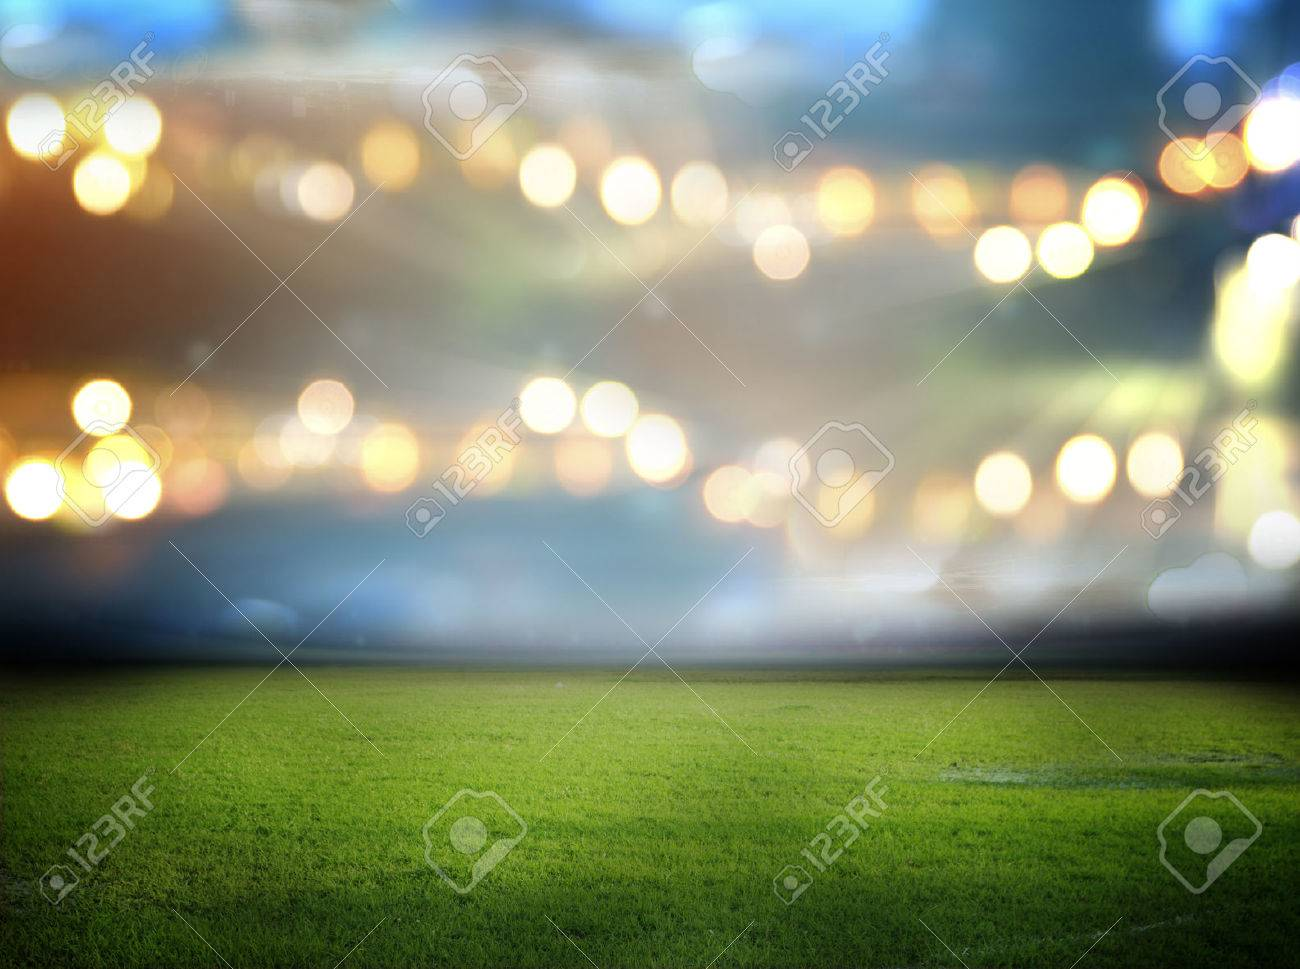 stadium in lights and flashes - 32845437